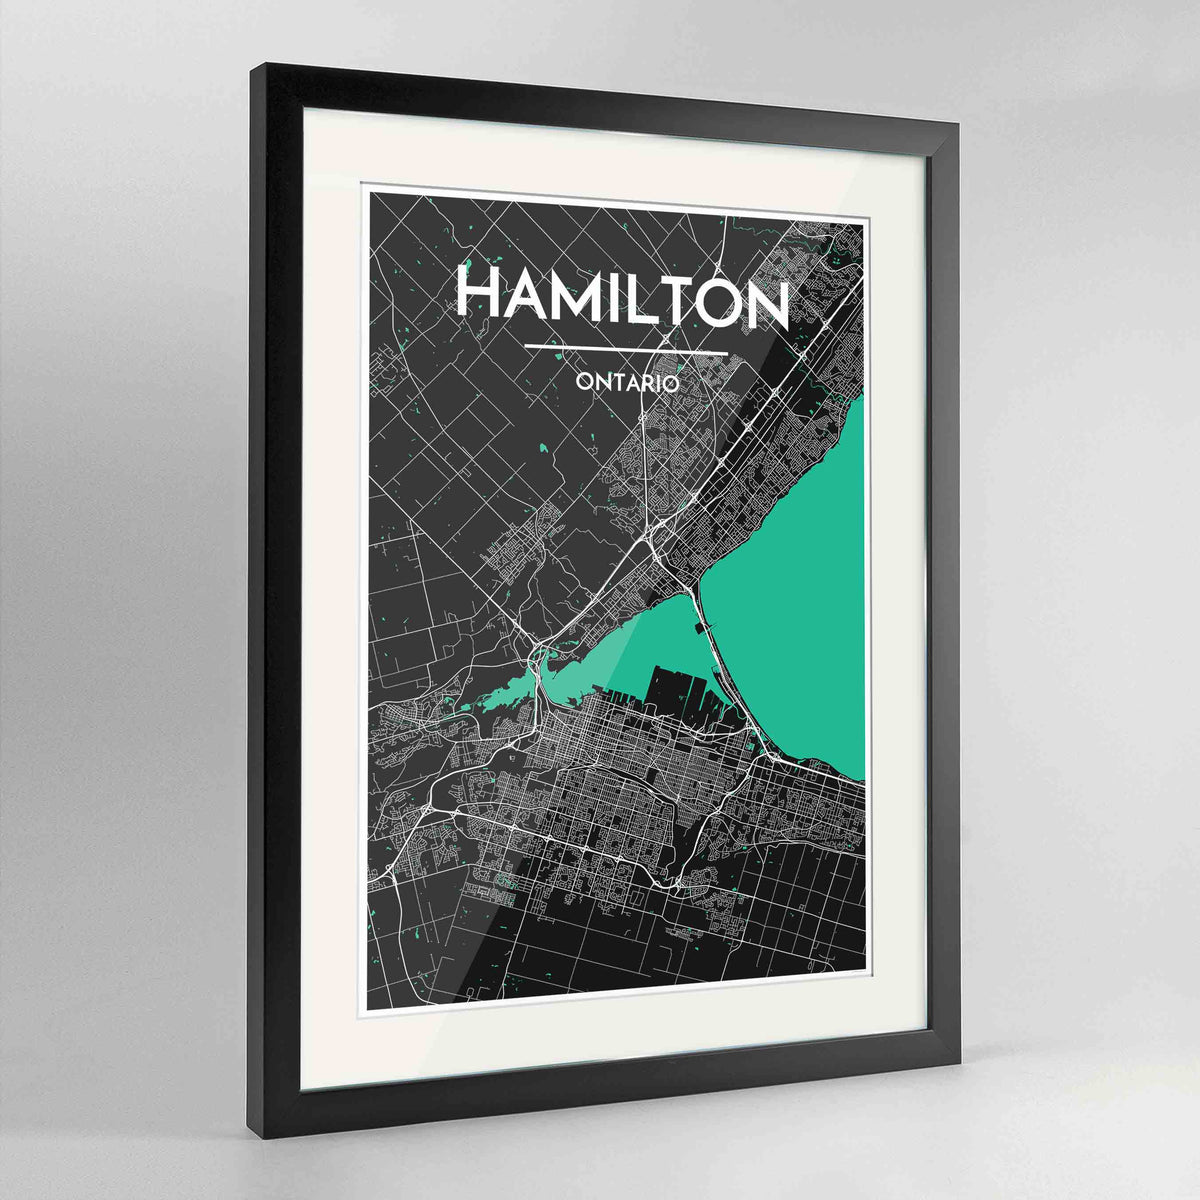 "Framed Hamilton City Map 24x36"" Contemporary Black frame Point Two Design Group"